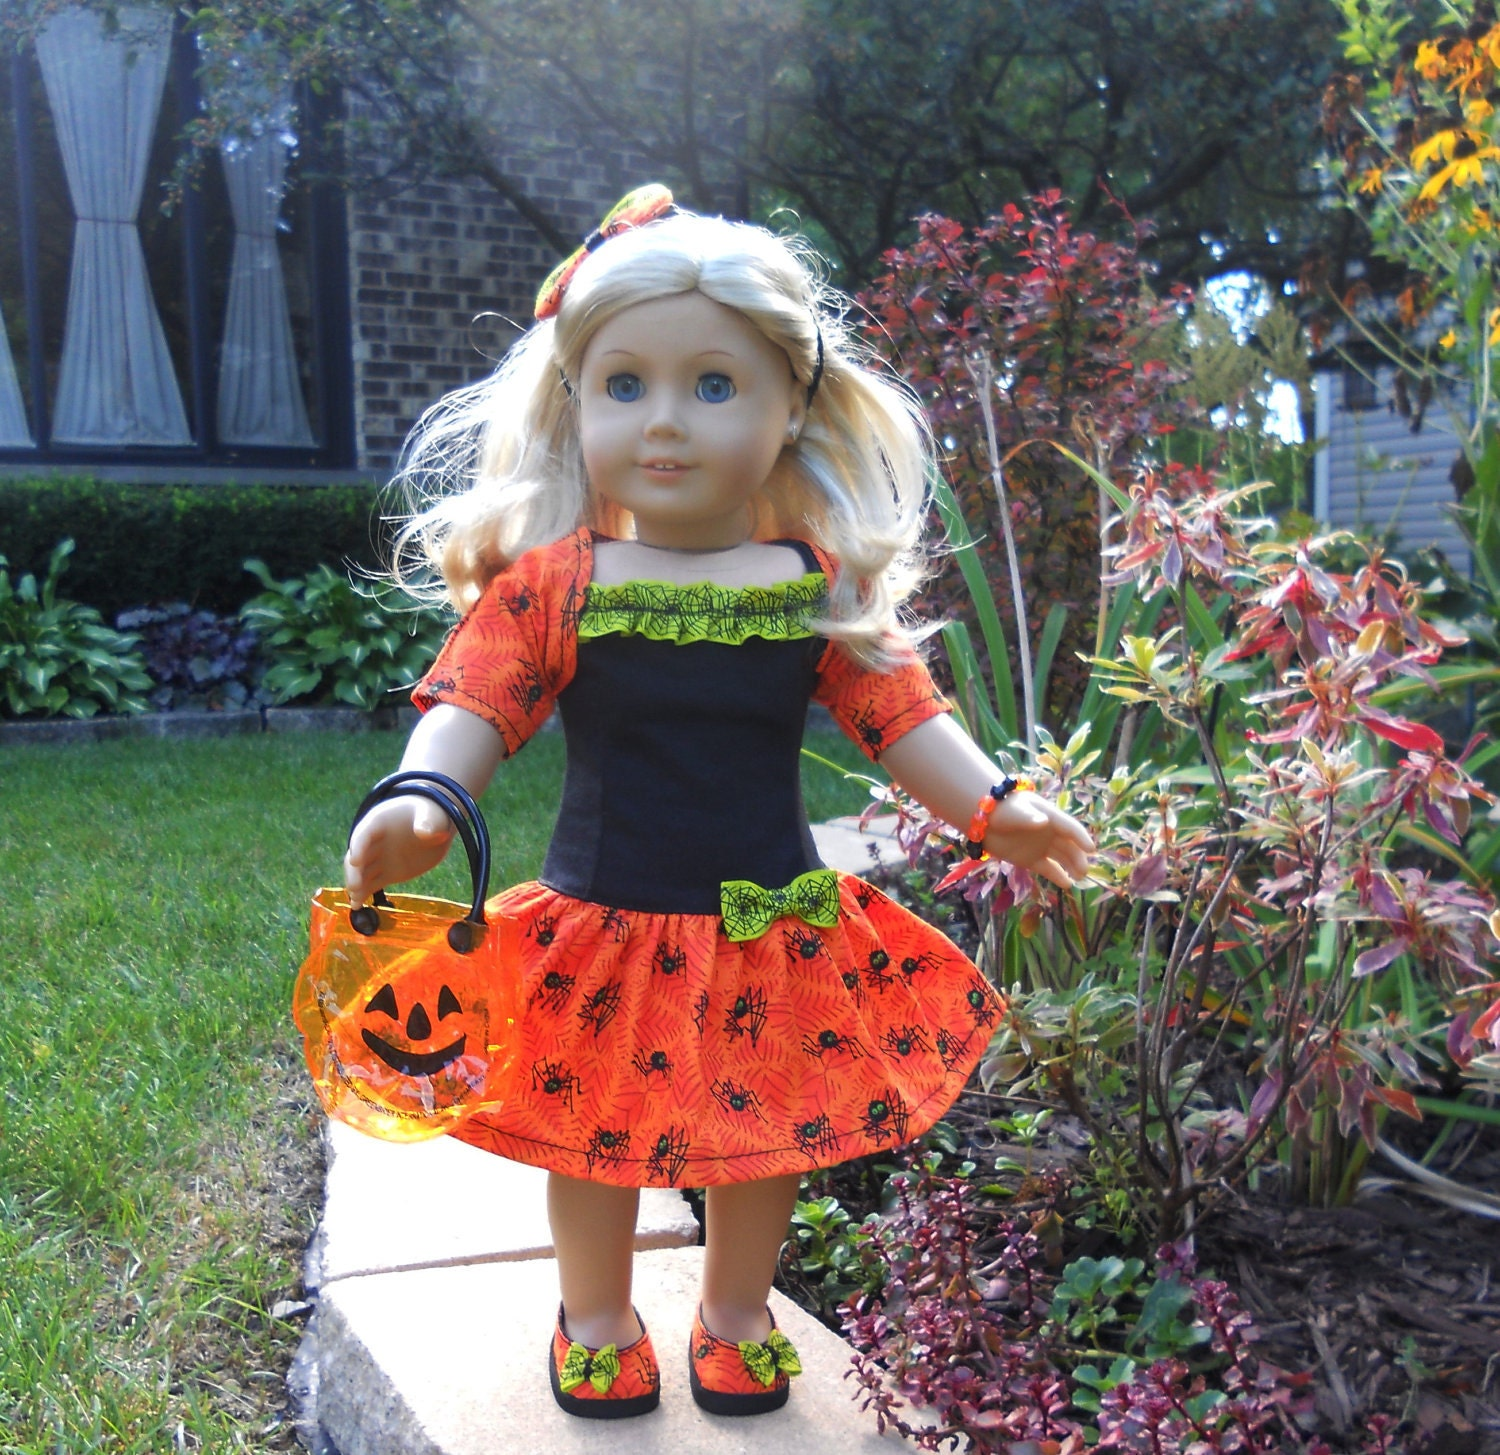 "American Girl Clothes - Halloween Dress - Orange Black Spiders - including Shoes - fits 18"" Dolls"